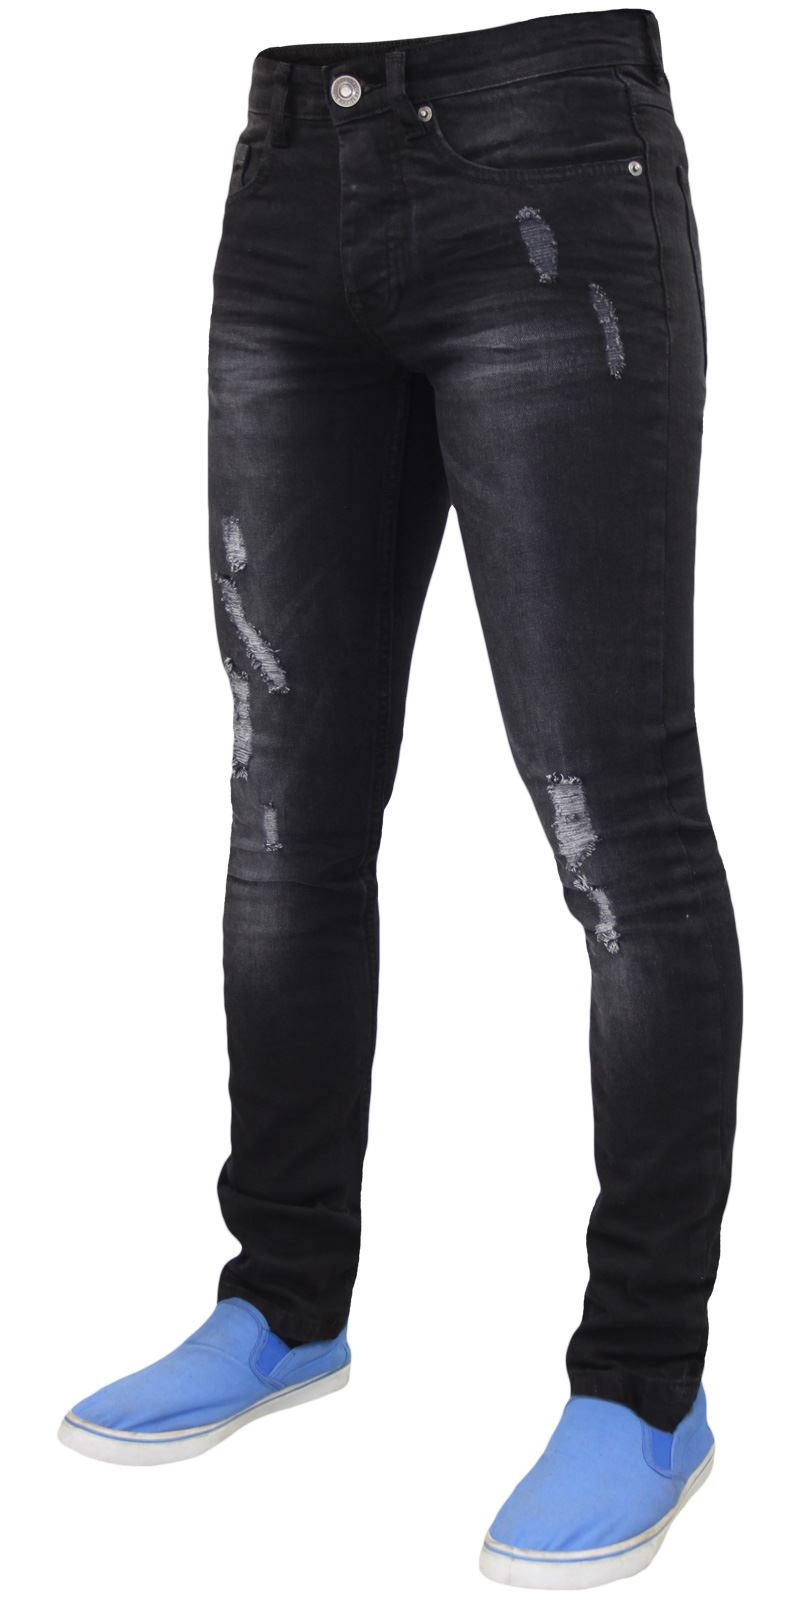 Mens-Skinny-Stretch-Ripped-Jeans-Slim-Fit-Casual-Trousers-Denim-Pants-All-Sizes thumbnail 3